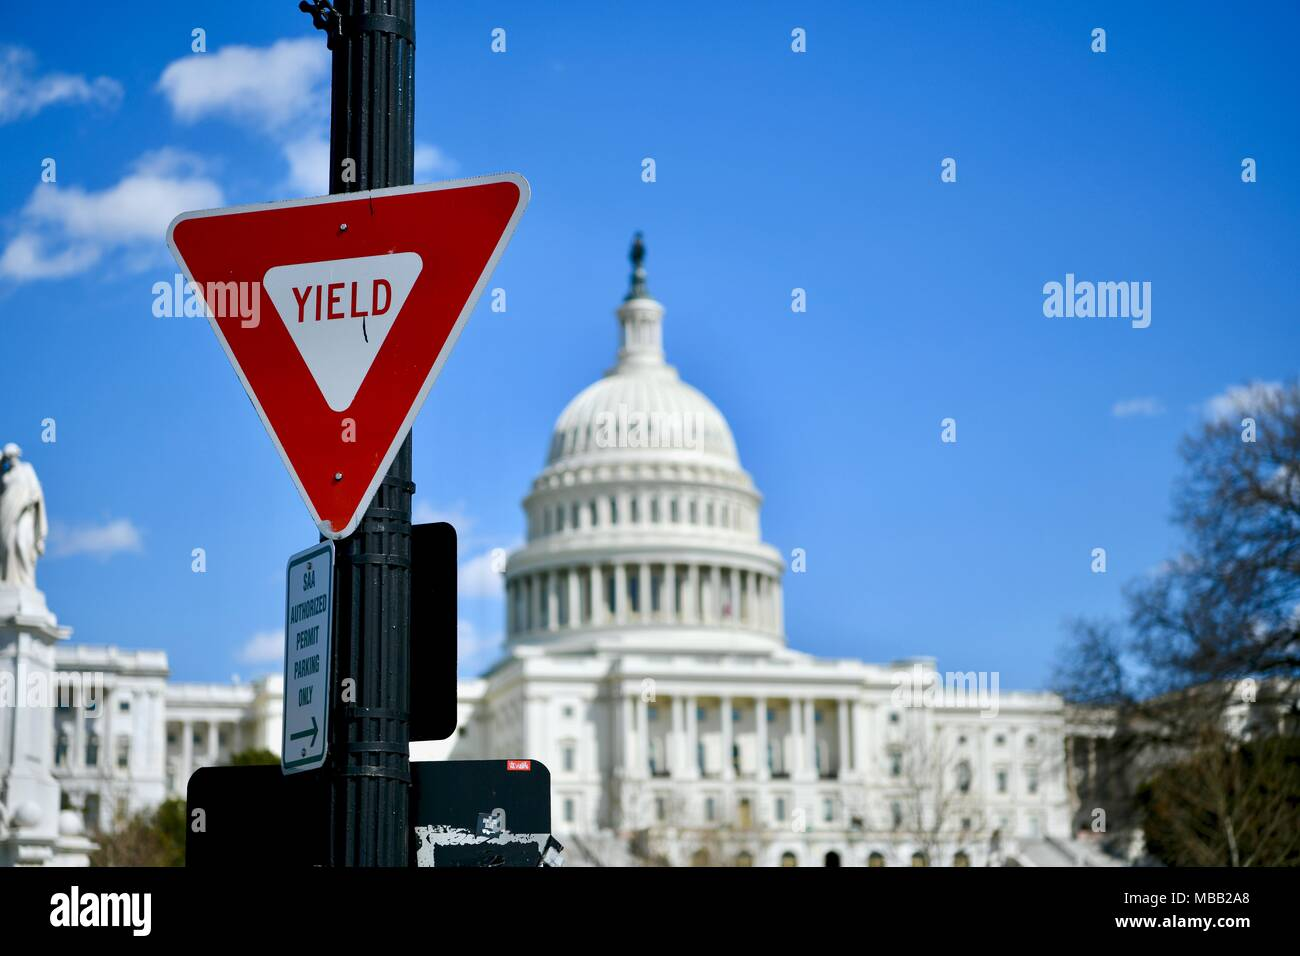 Yield sign in front of the United States Capitol building in Washington DC, USA - Stock Image